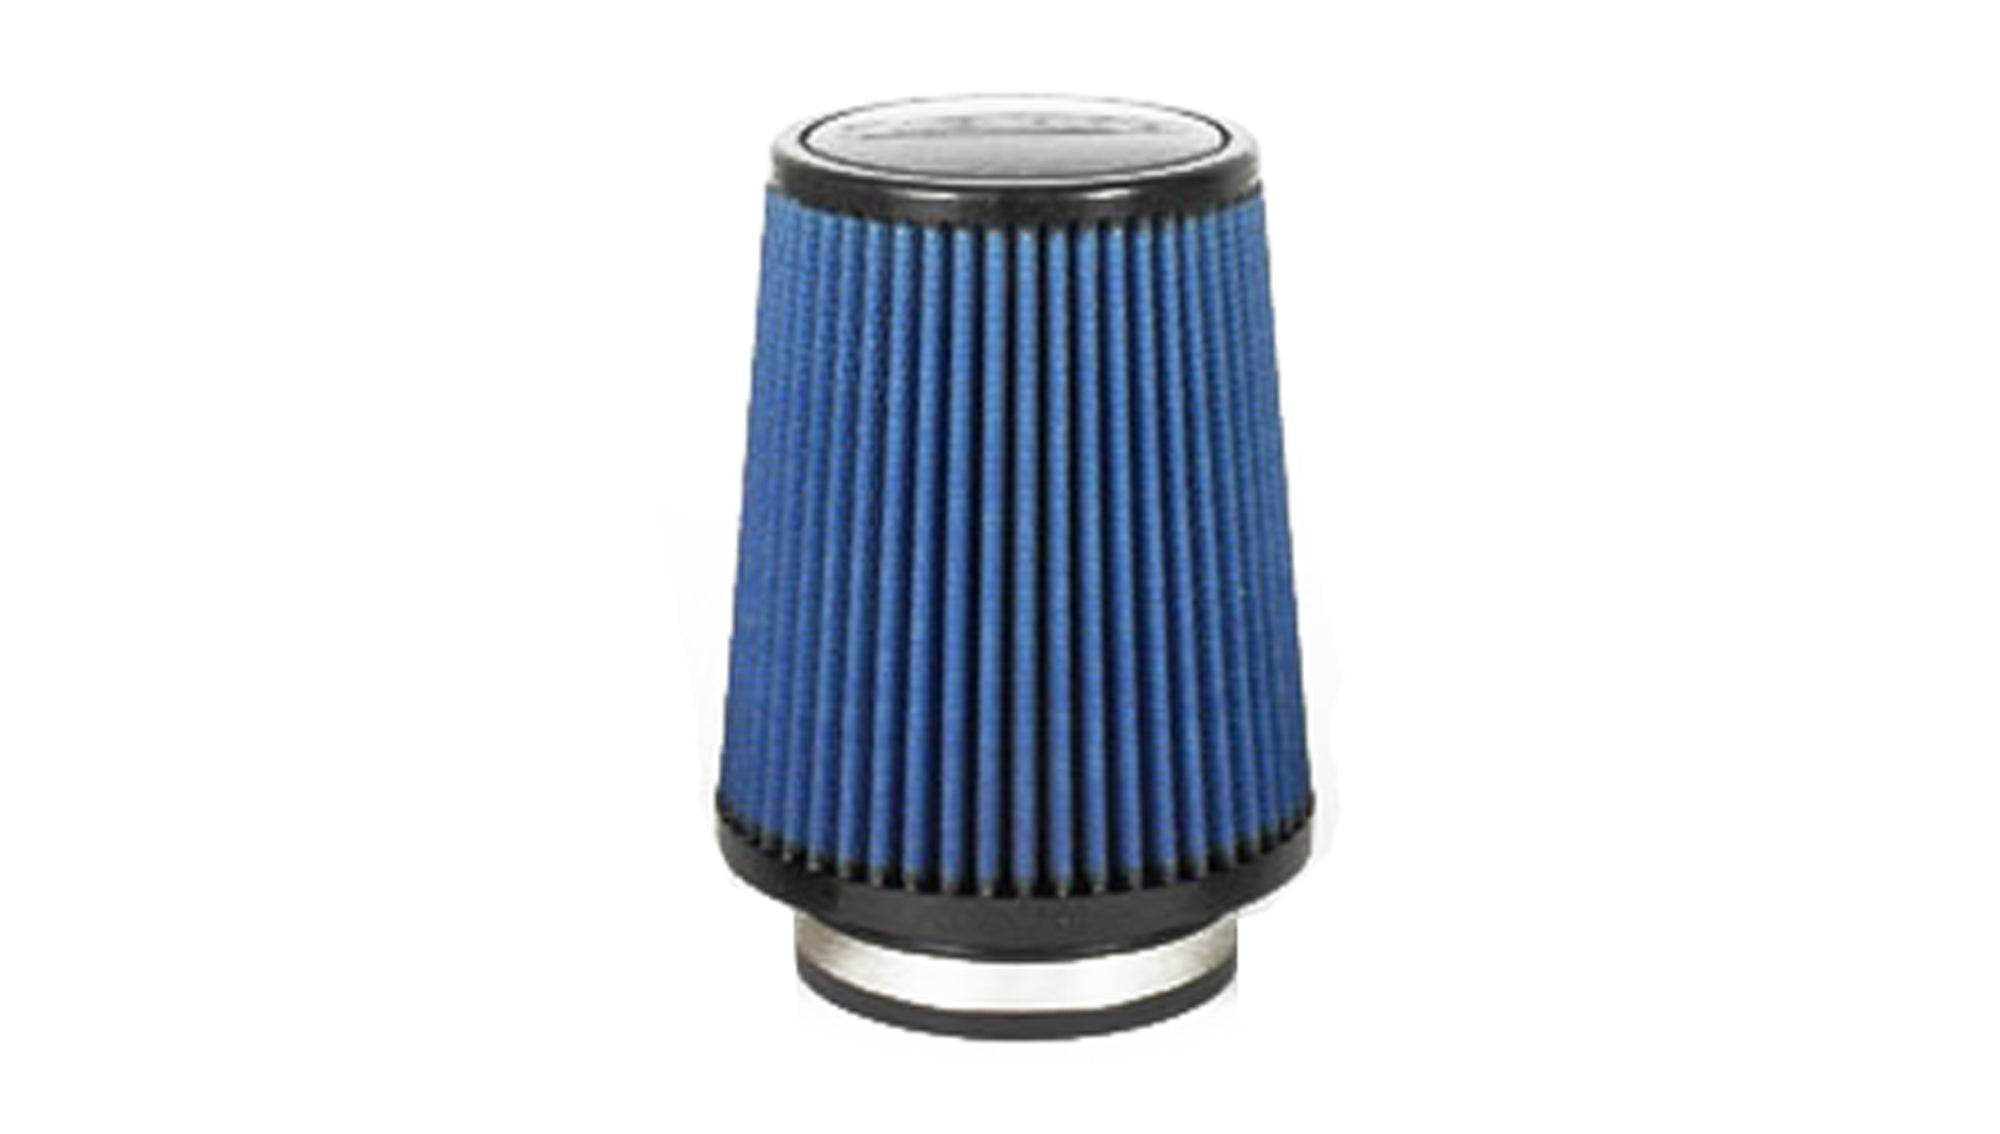 1996-2002 Chevrolet Suburban Oiled Filter - 5111